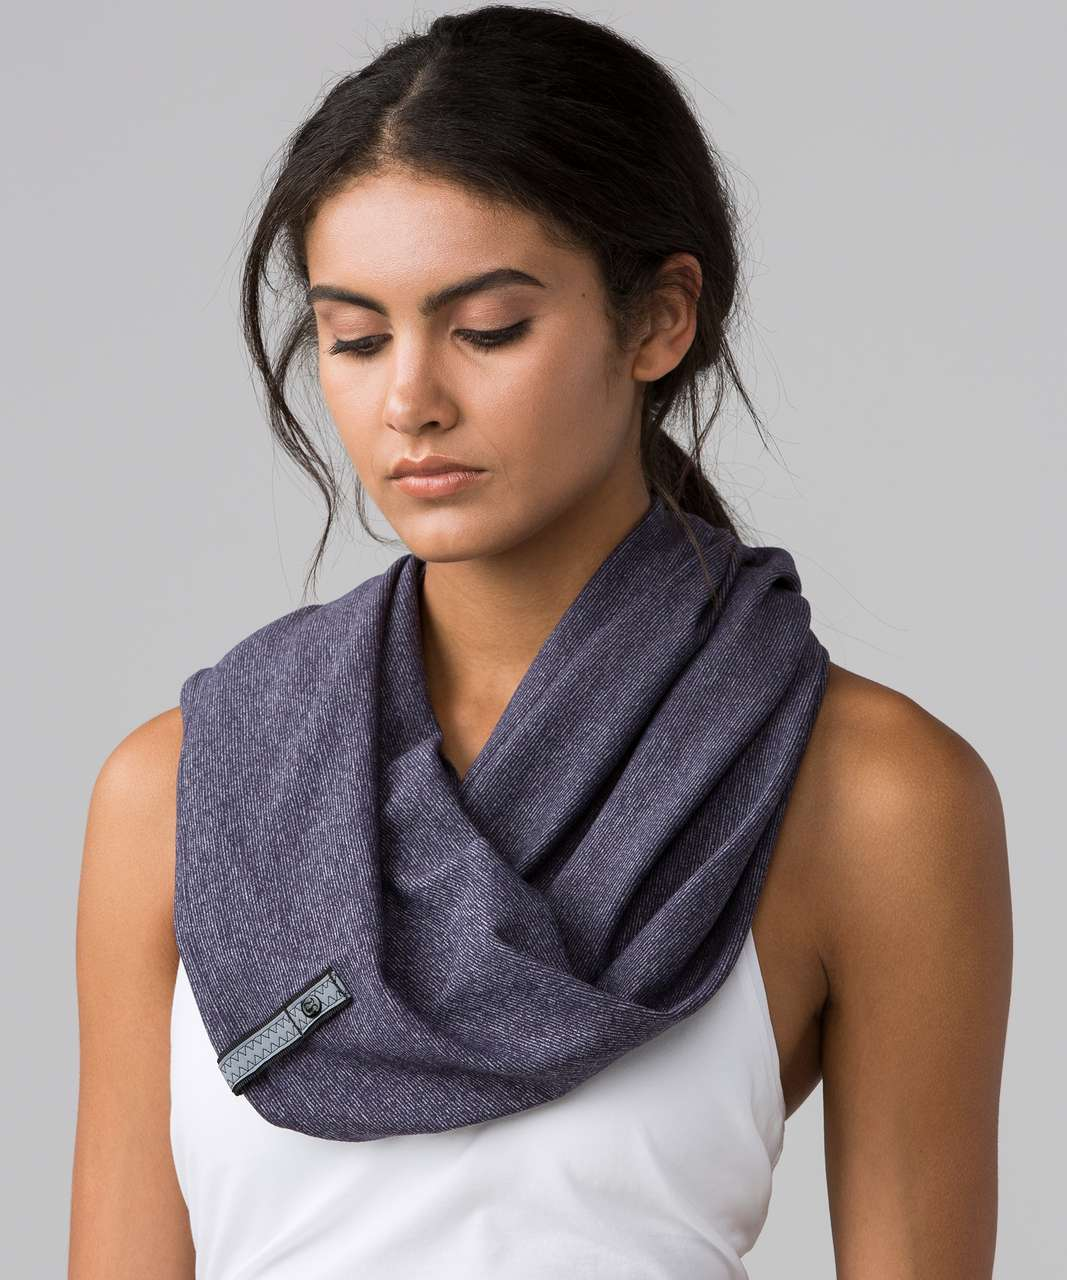 Lululemon Vinyasa Scarf (Rulu) - Wee Stripe Black Grape Heathered Black Grape / Black Grape